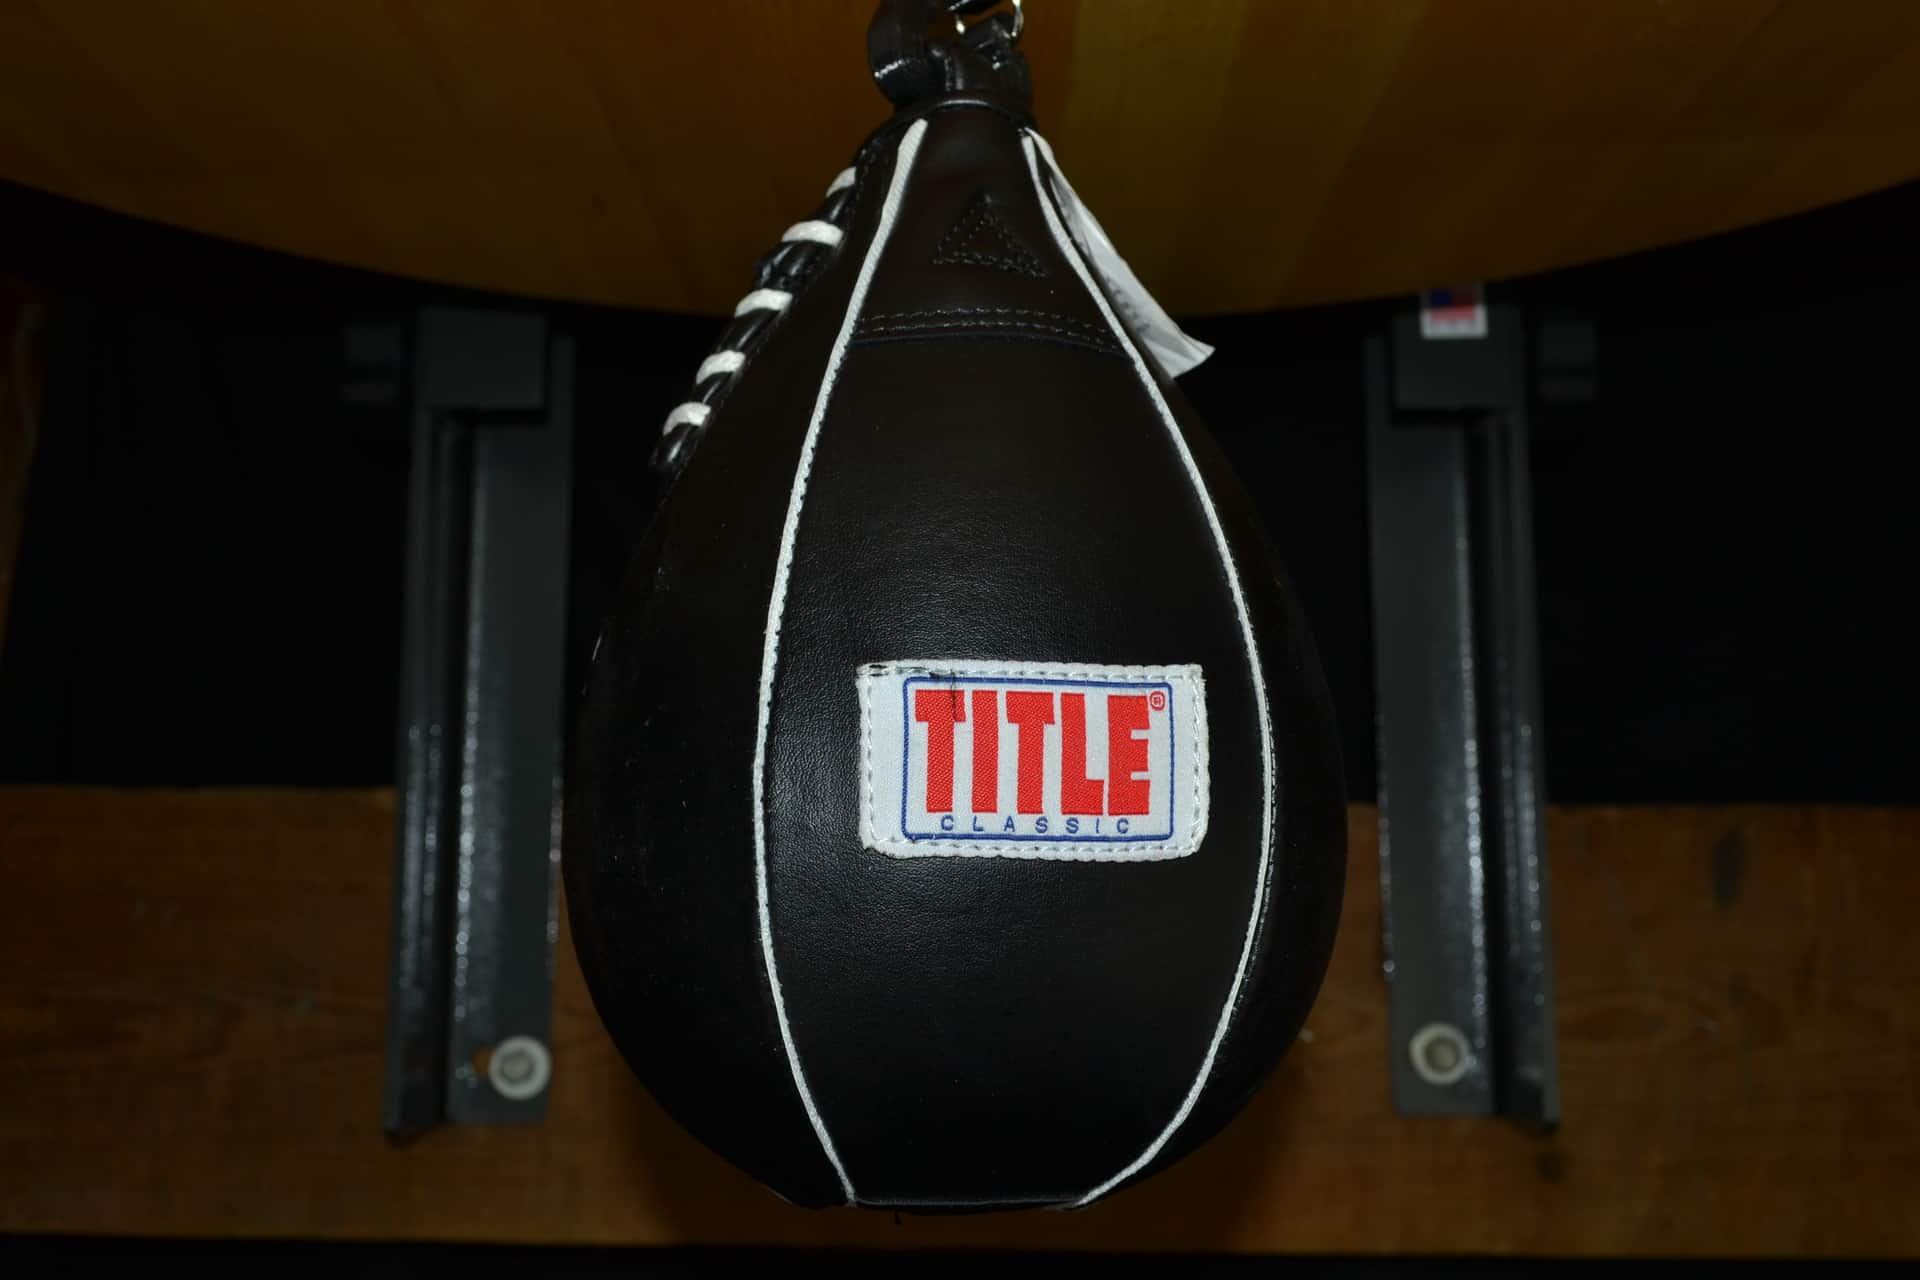 Title classic super speed bag v2 5x8 review